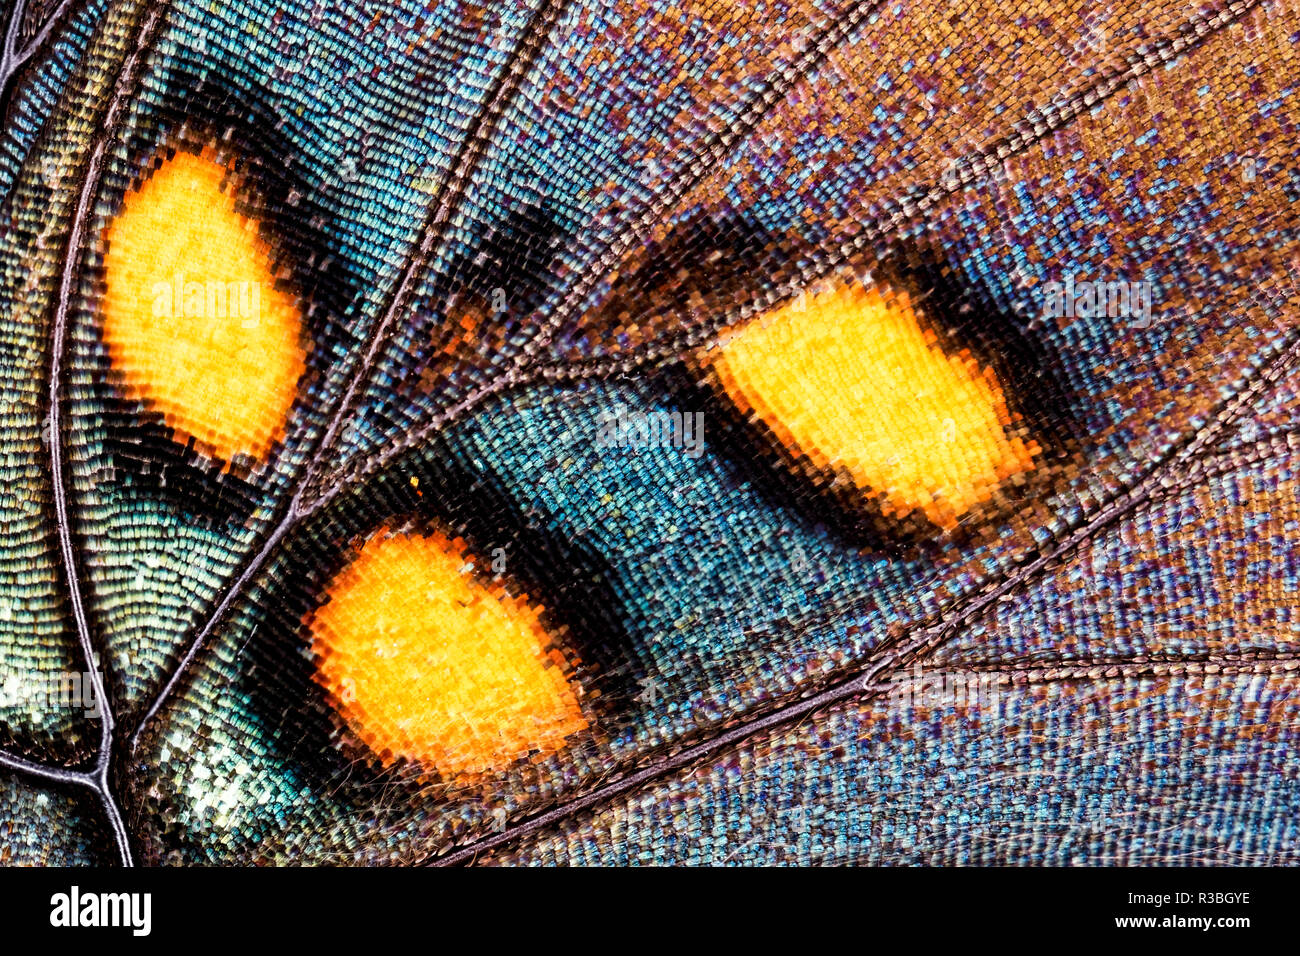 Close-up pattern, wing scales of Red Spotted Purple butterfly, Basilarchia astyanax - Stock Image